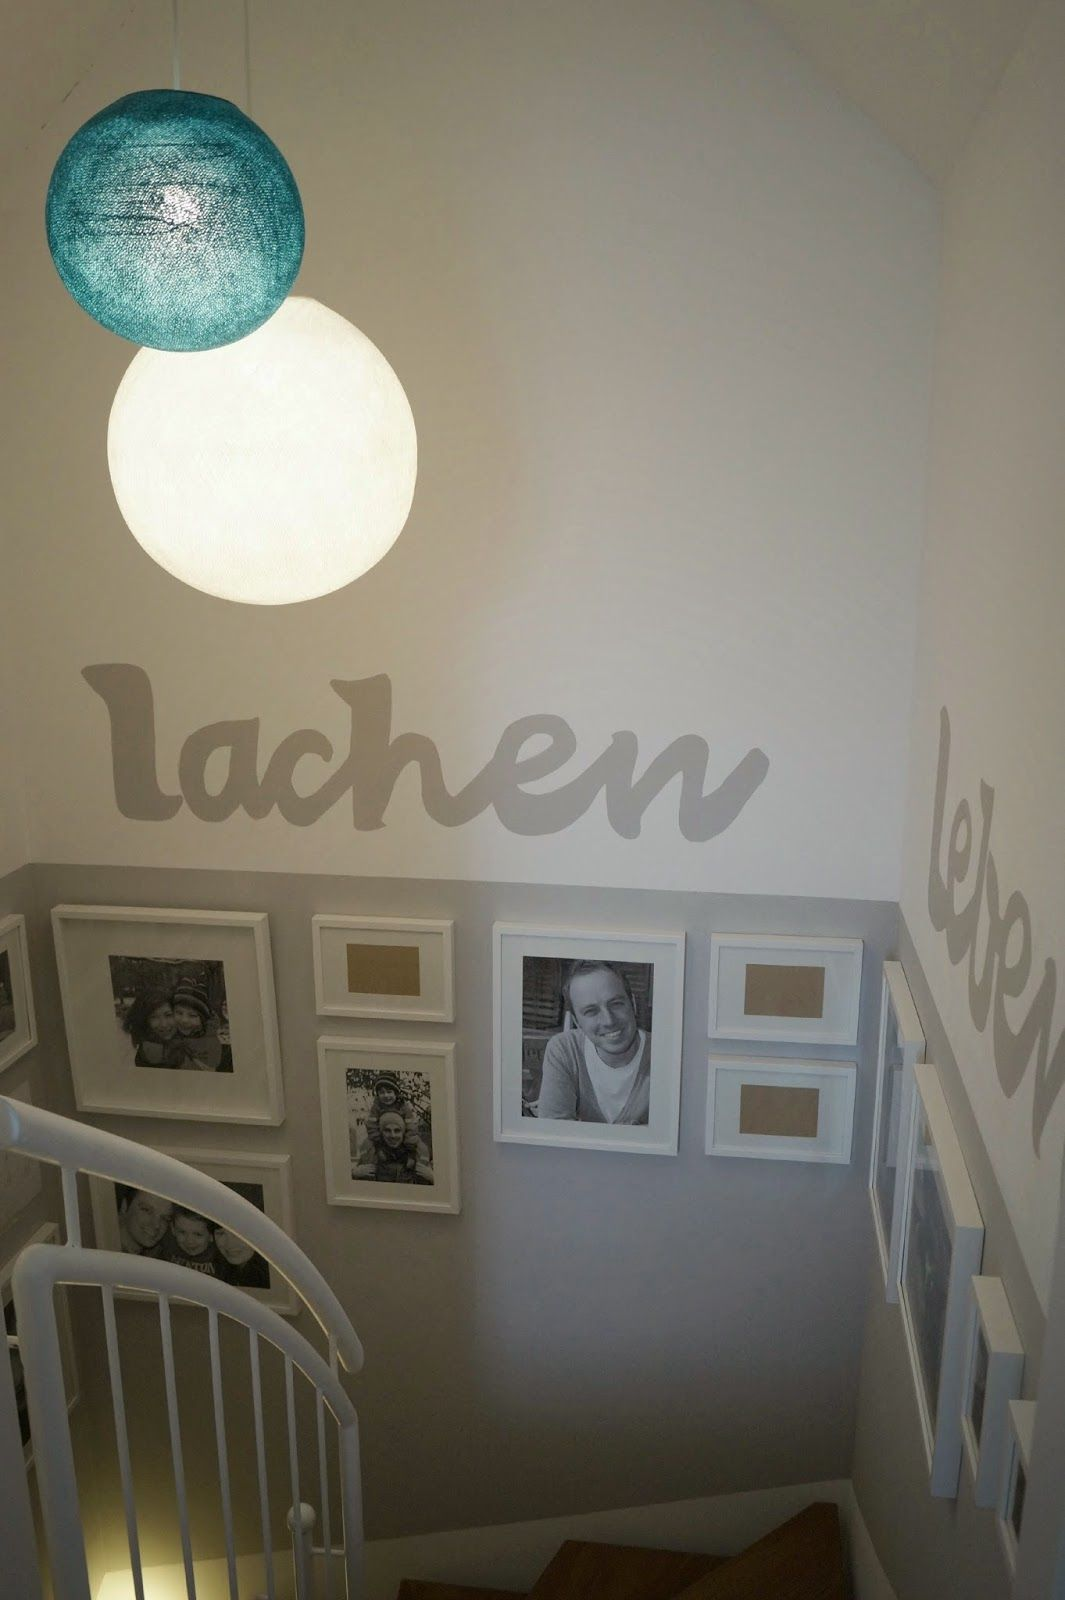 Elegant Lachkauz: Treppenhaus Make Over